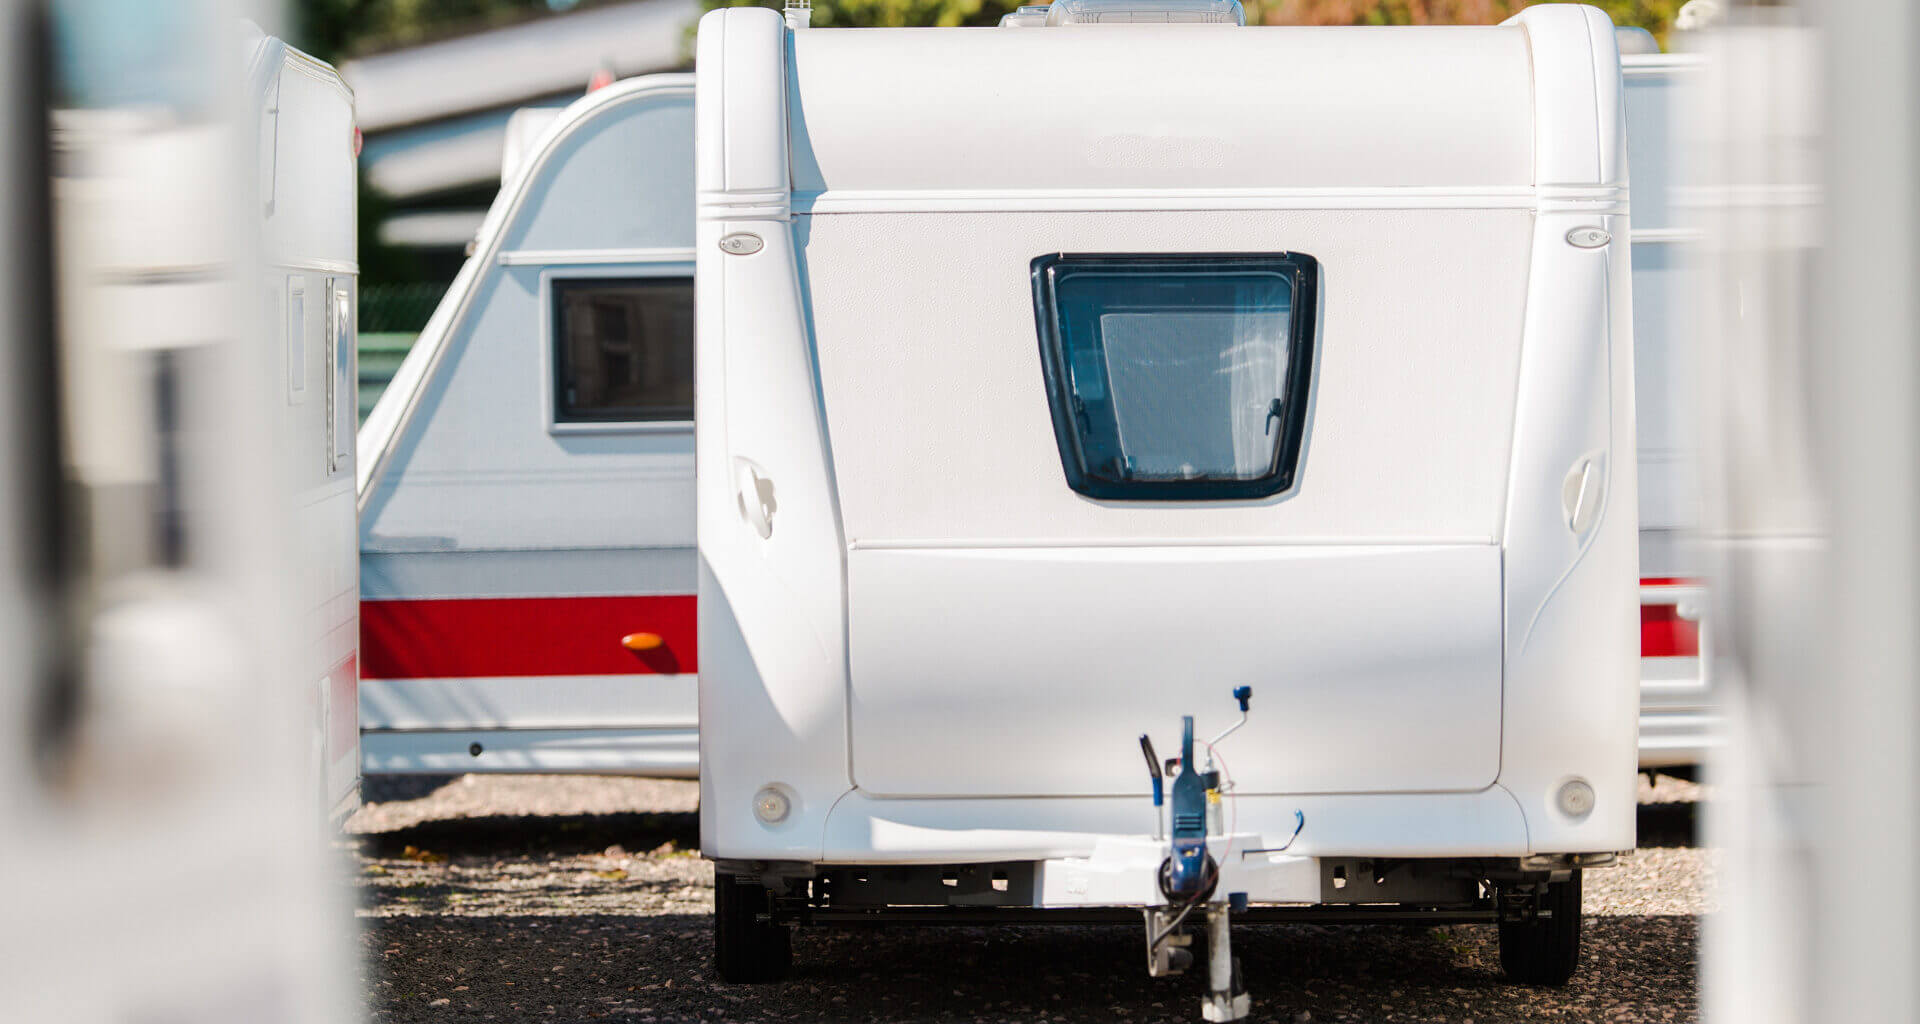 What are the best tiny travel trailers under 3500 lbs in 2021? Pictured is a tiny travel trailer parked on a sales lot around other trailers. Is it the right one for you?